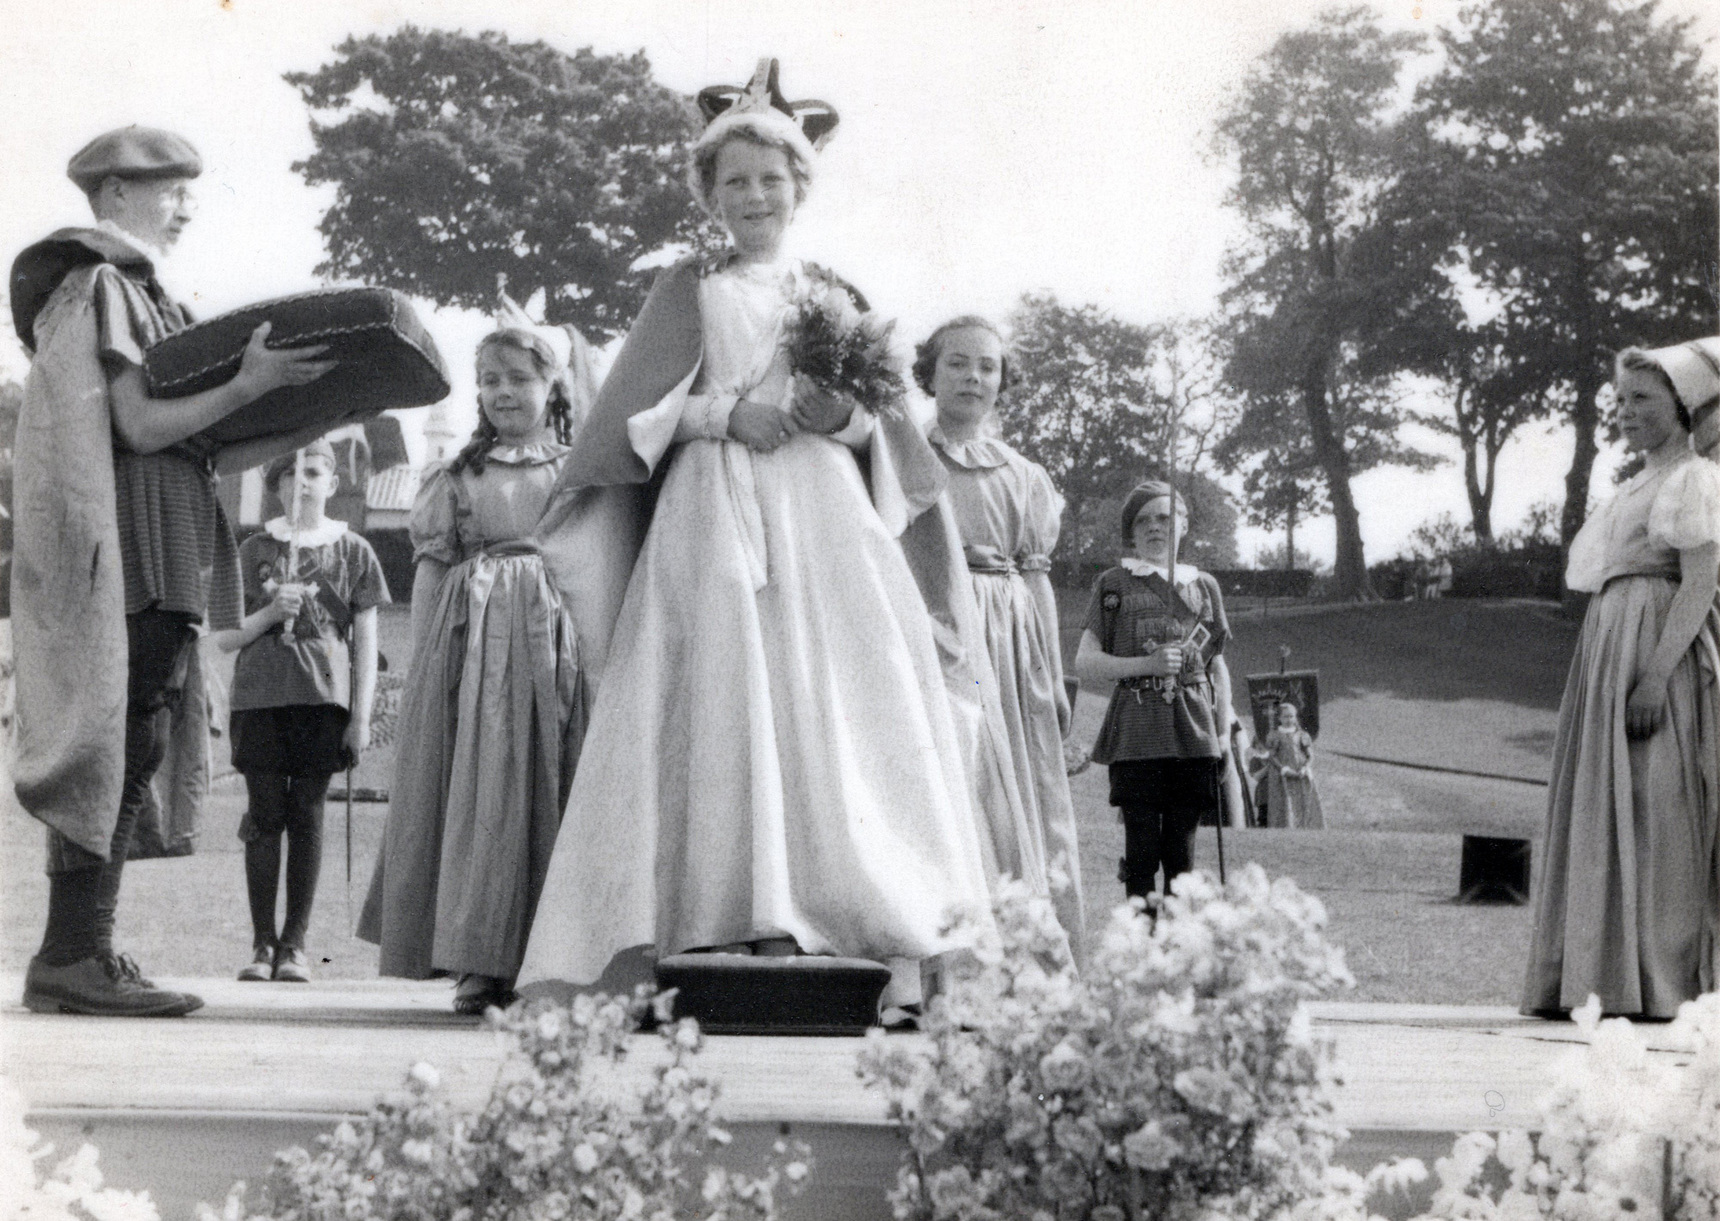 Crowning Of The Newhaven Gala Queen At Starbank Park, June 1955